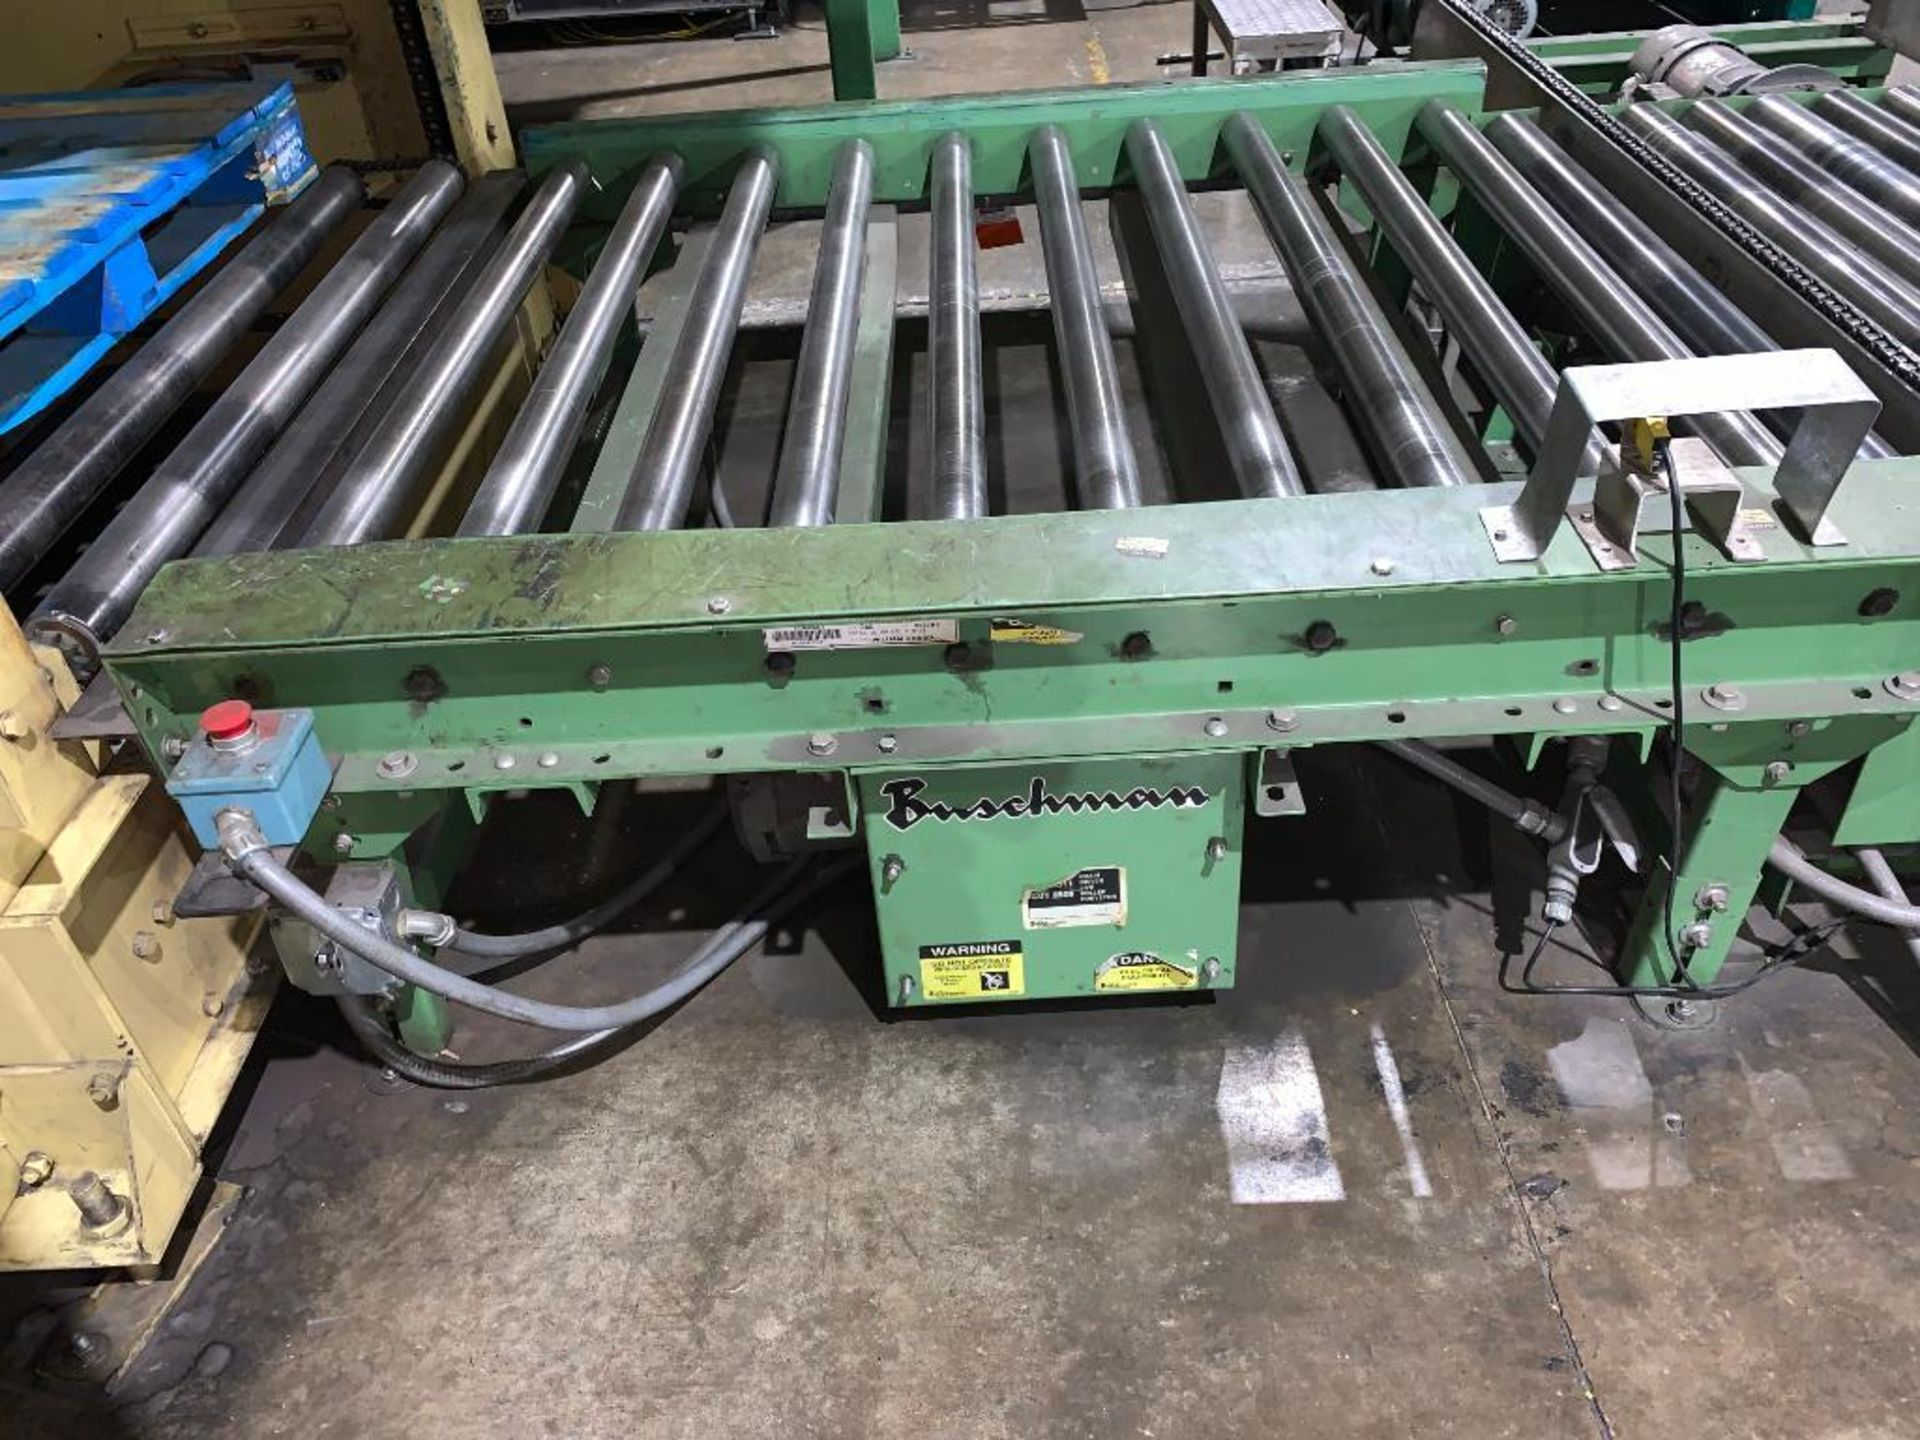 1992 Currie top to bottom palletizer, machine number LSP-5-1176 - Image 40 of 56